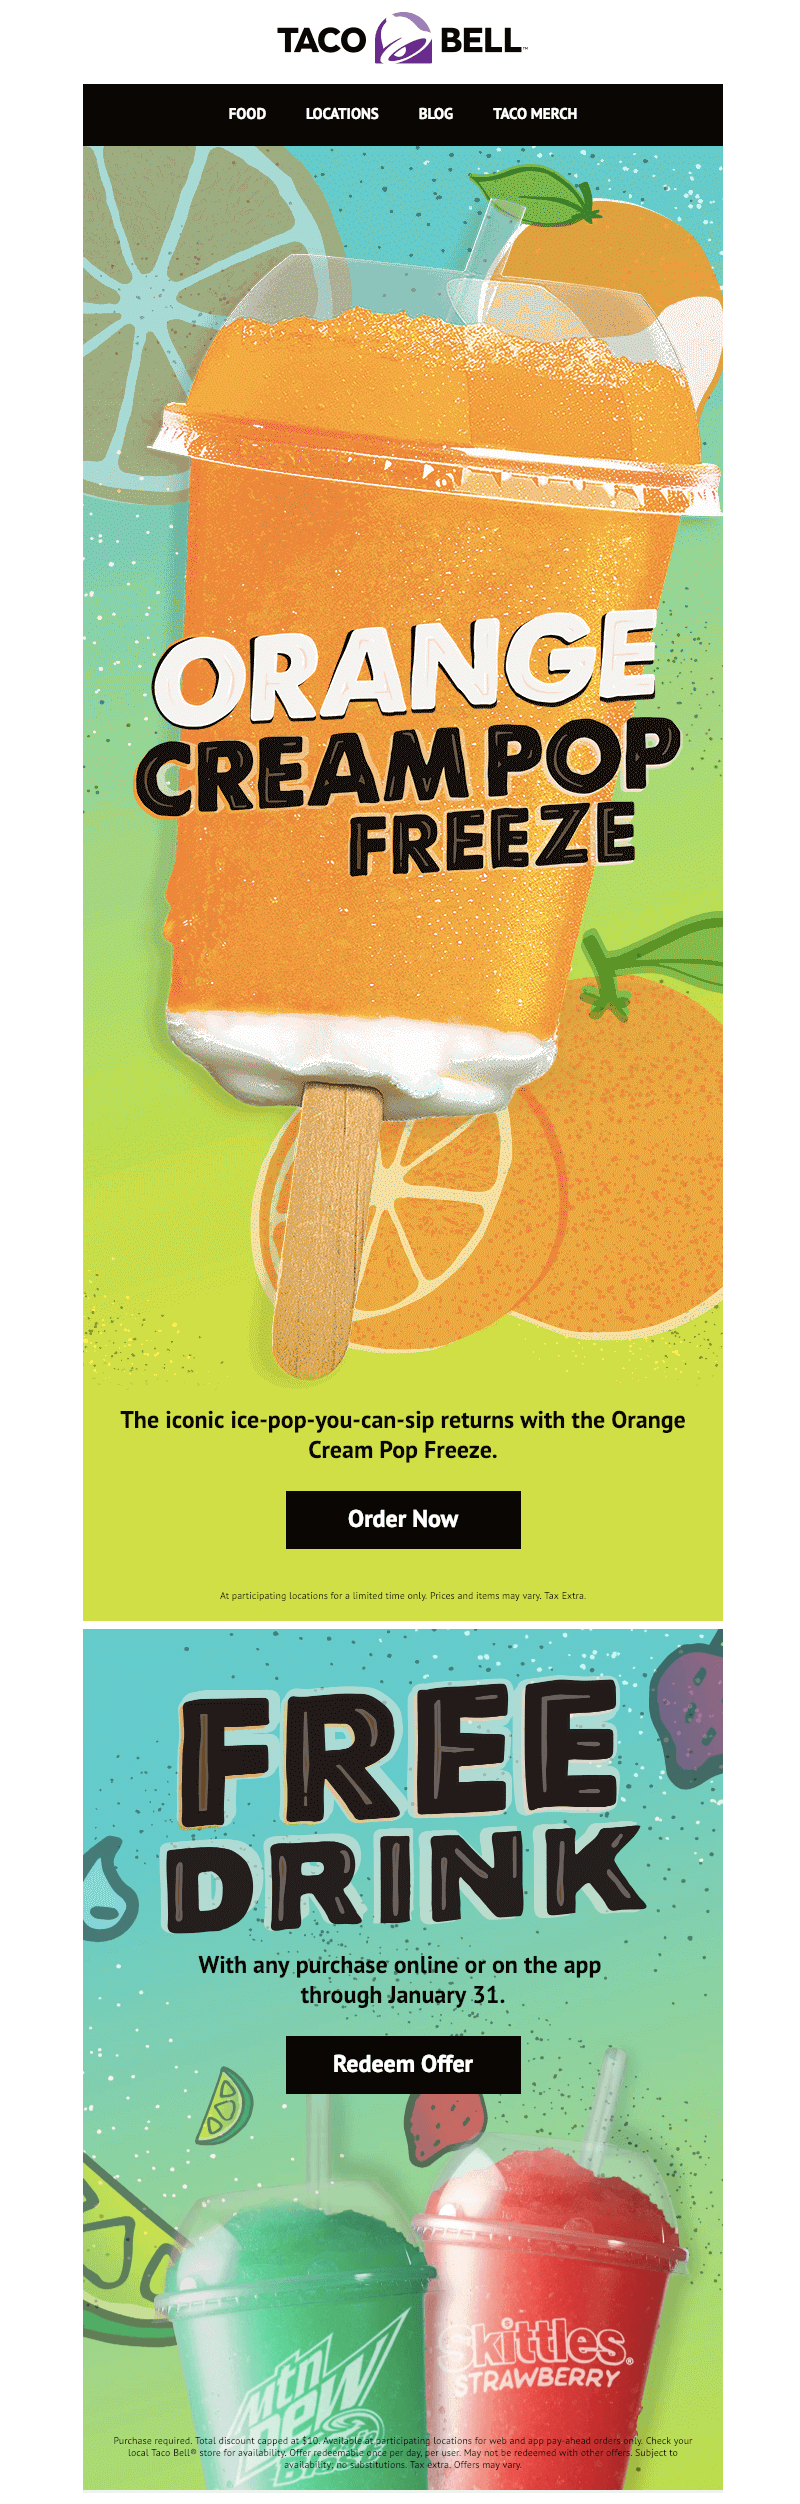 taco bell top email design trends for 2019